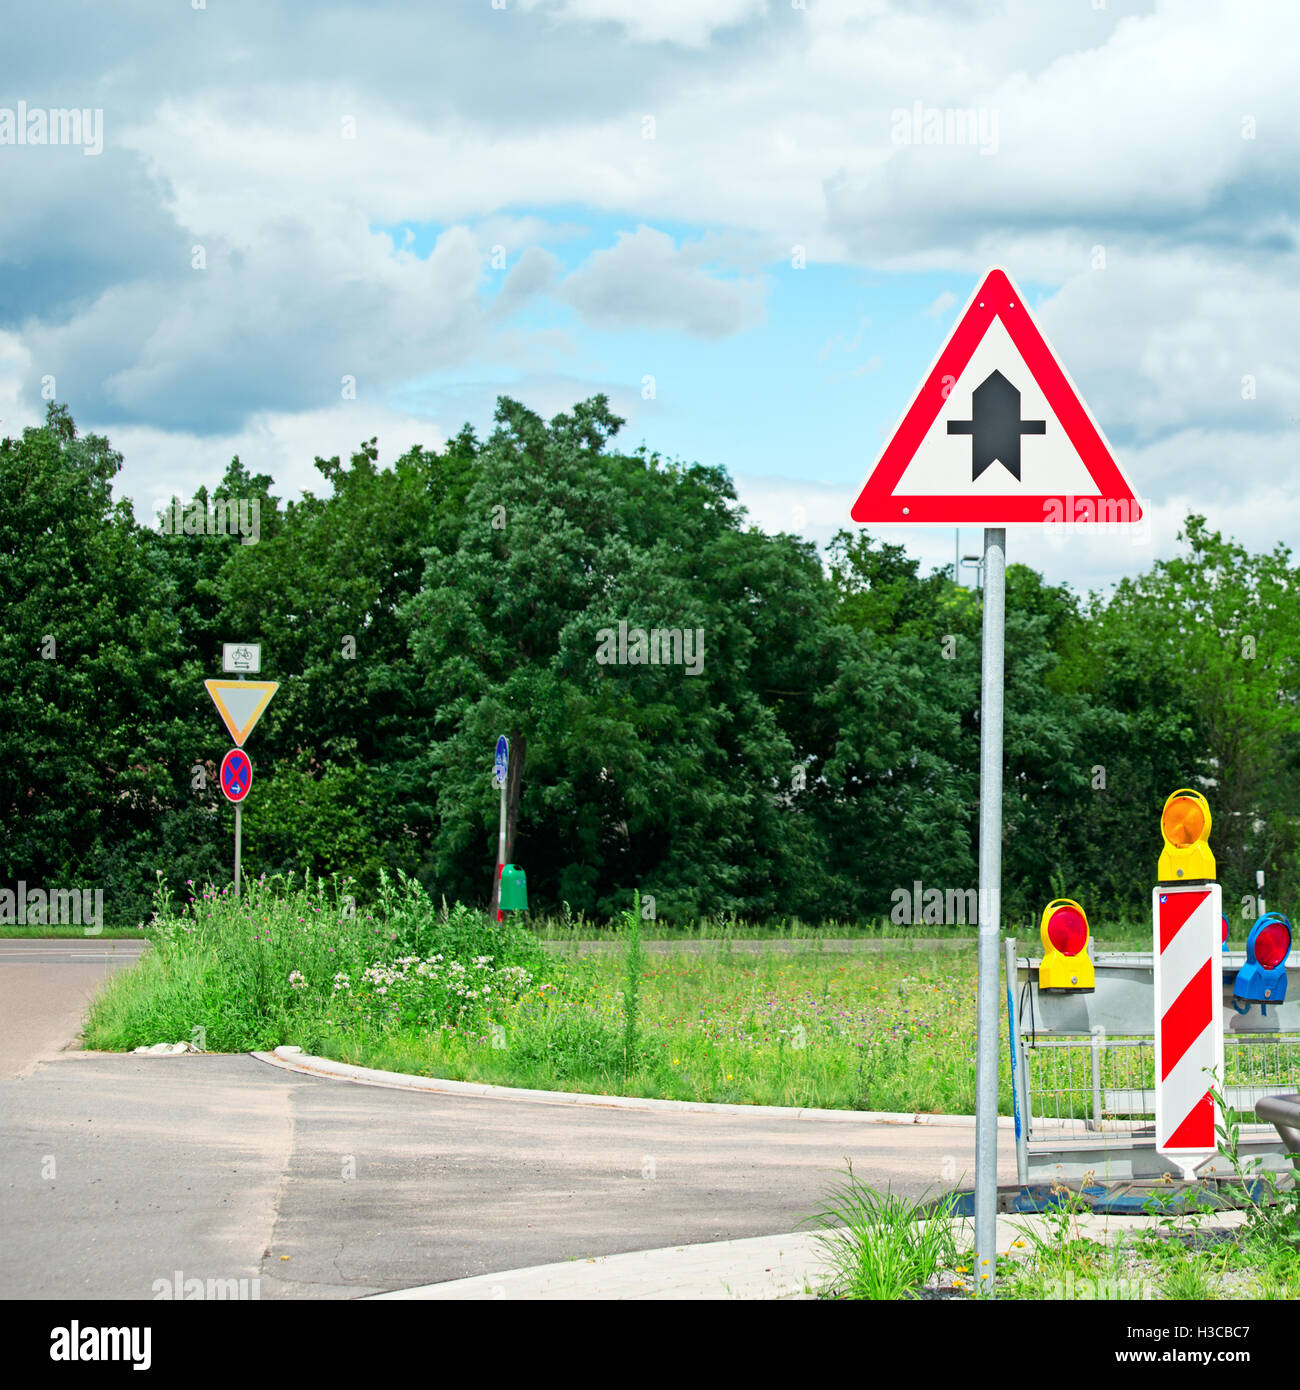 warning road sign at the intersection of roads - Stock Image